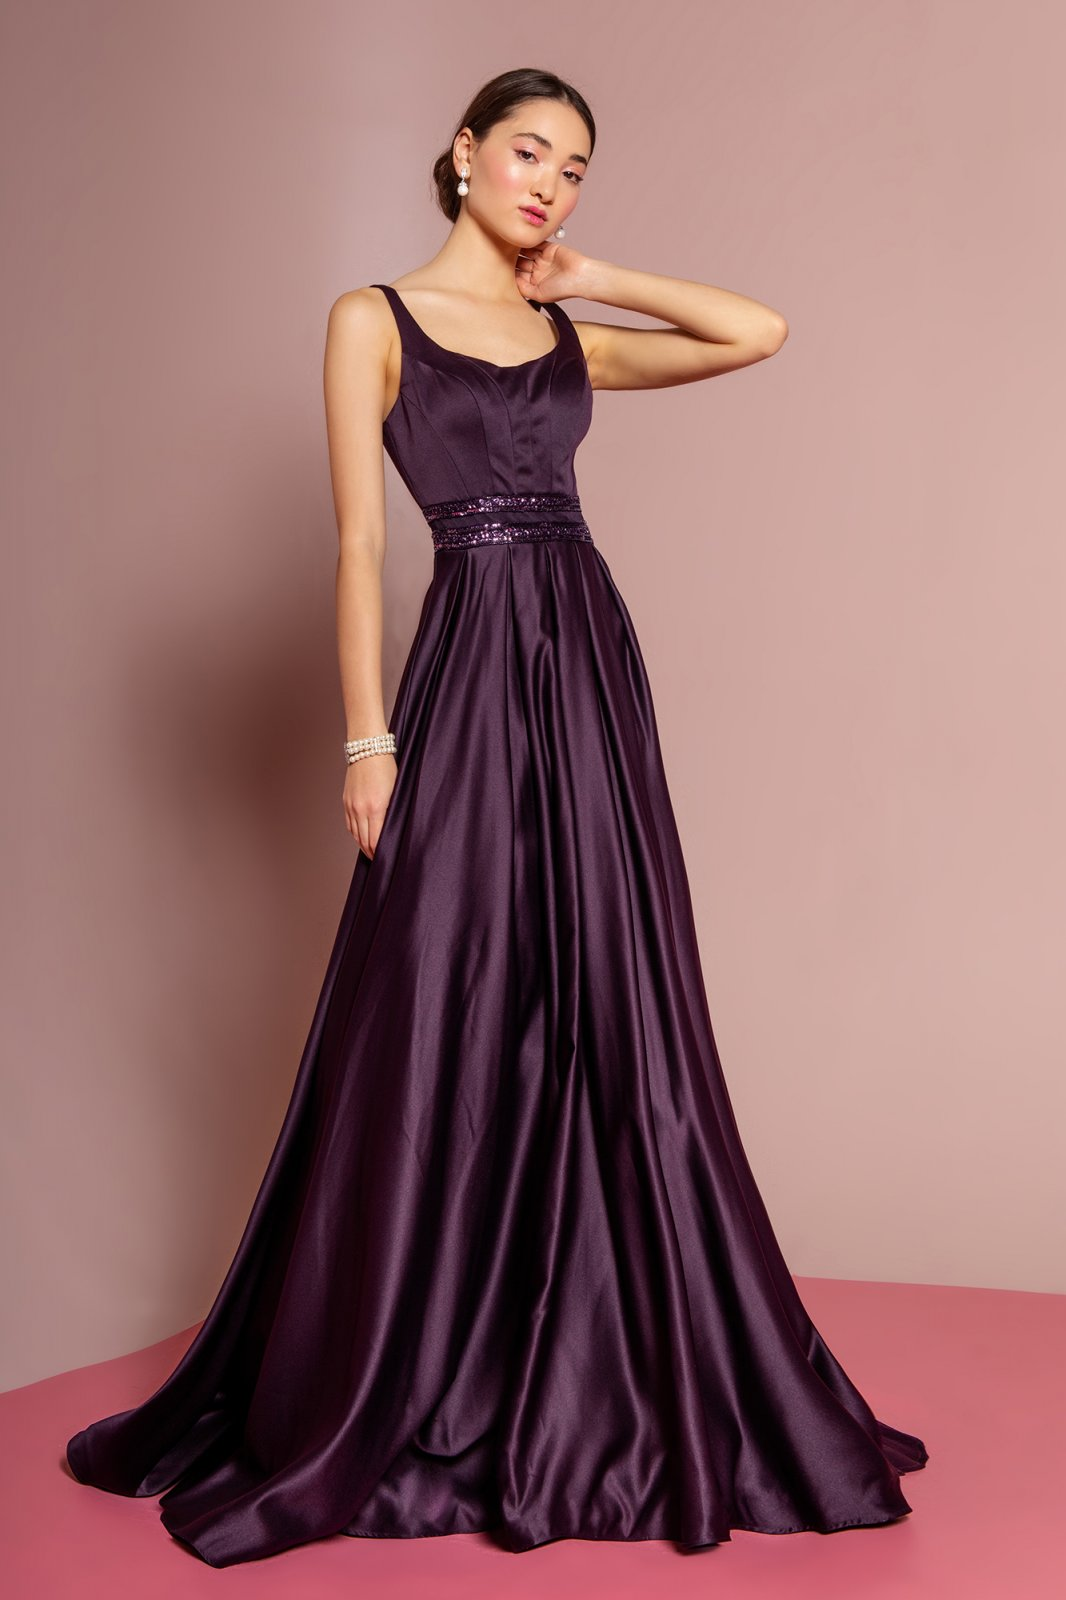 Eggplant Scoop Neck Satin A-Line Dress With Sheer Lace Back